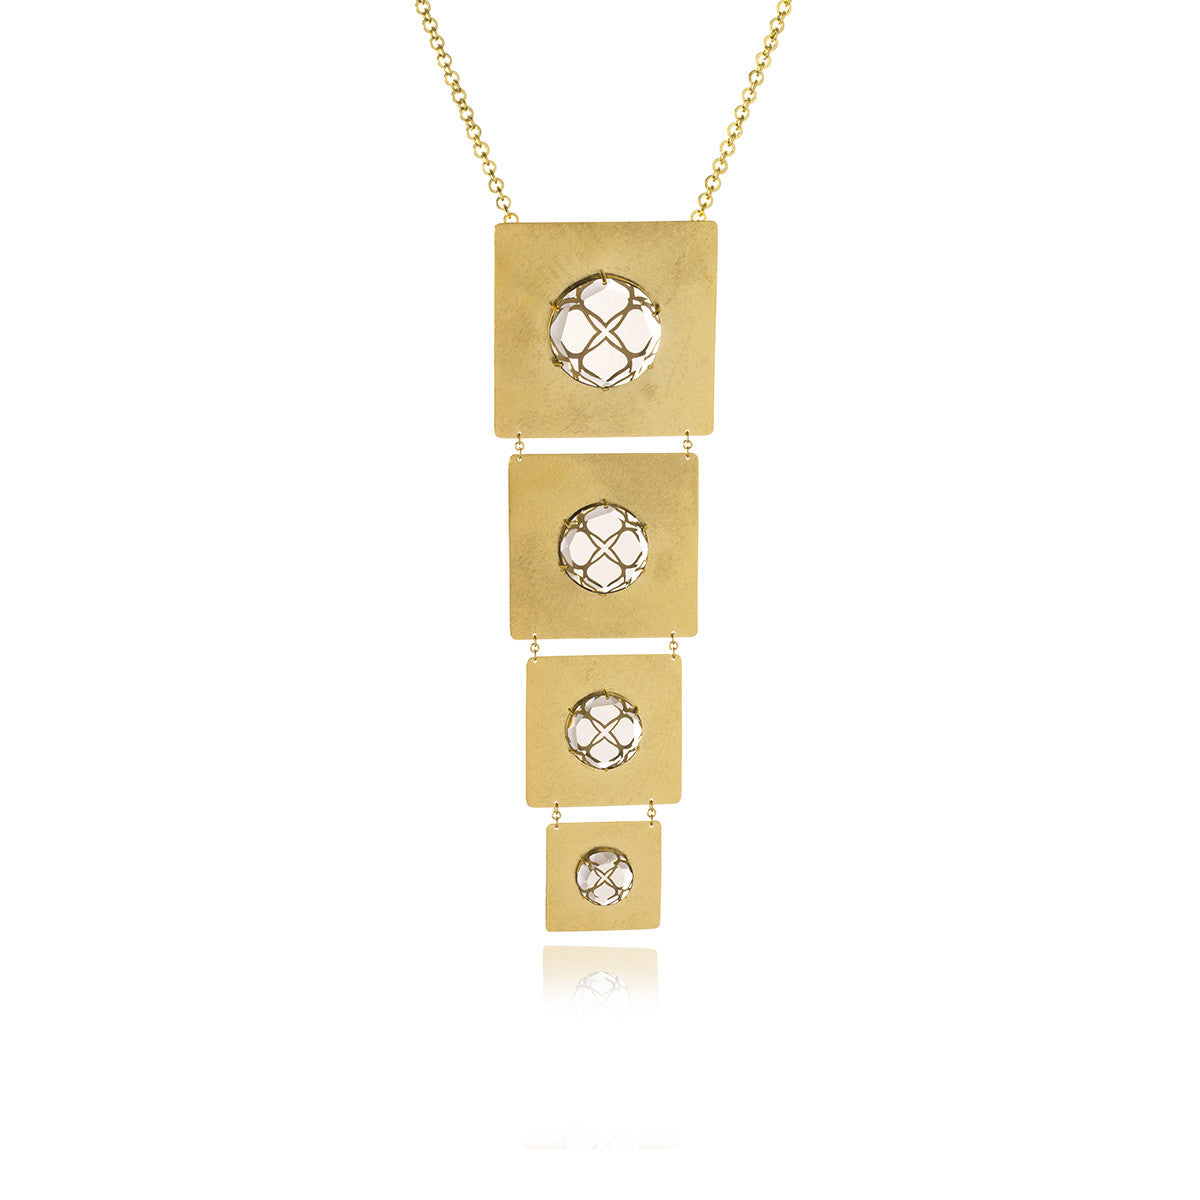 Releve Signature Gold Square Necklace - Georgina Jewelry